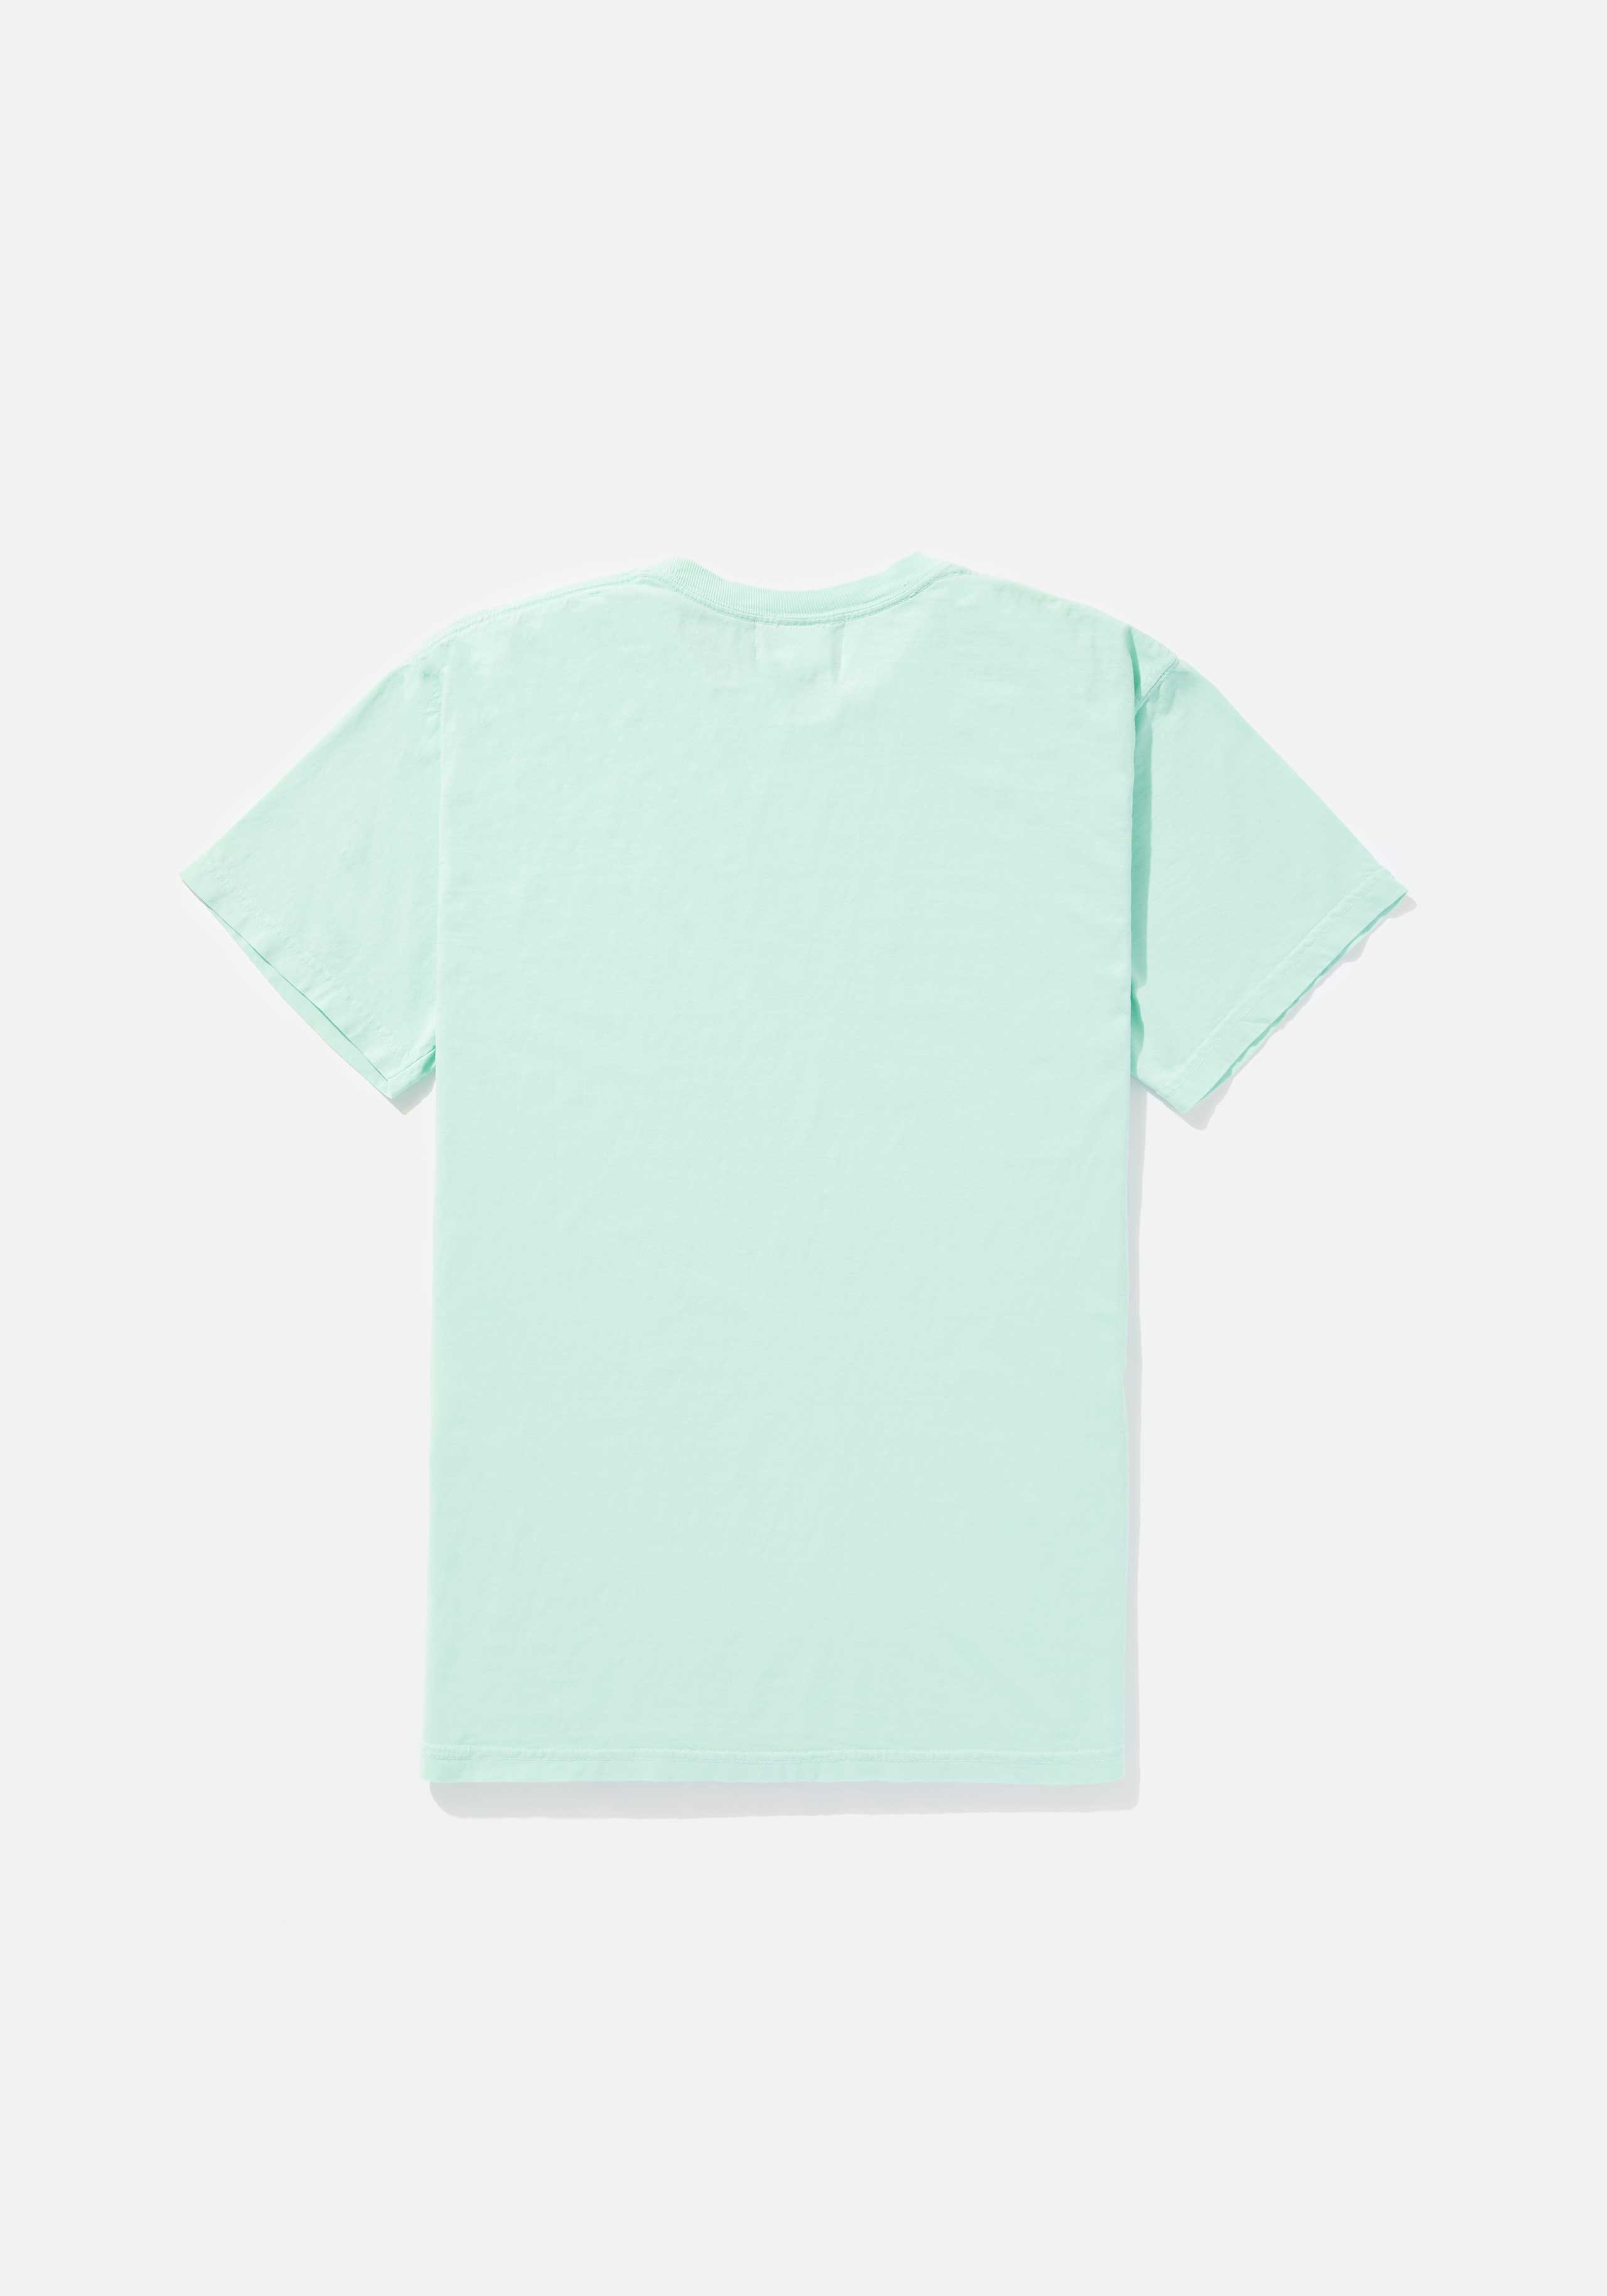 mki garment dyed pocket tee 2